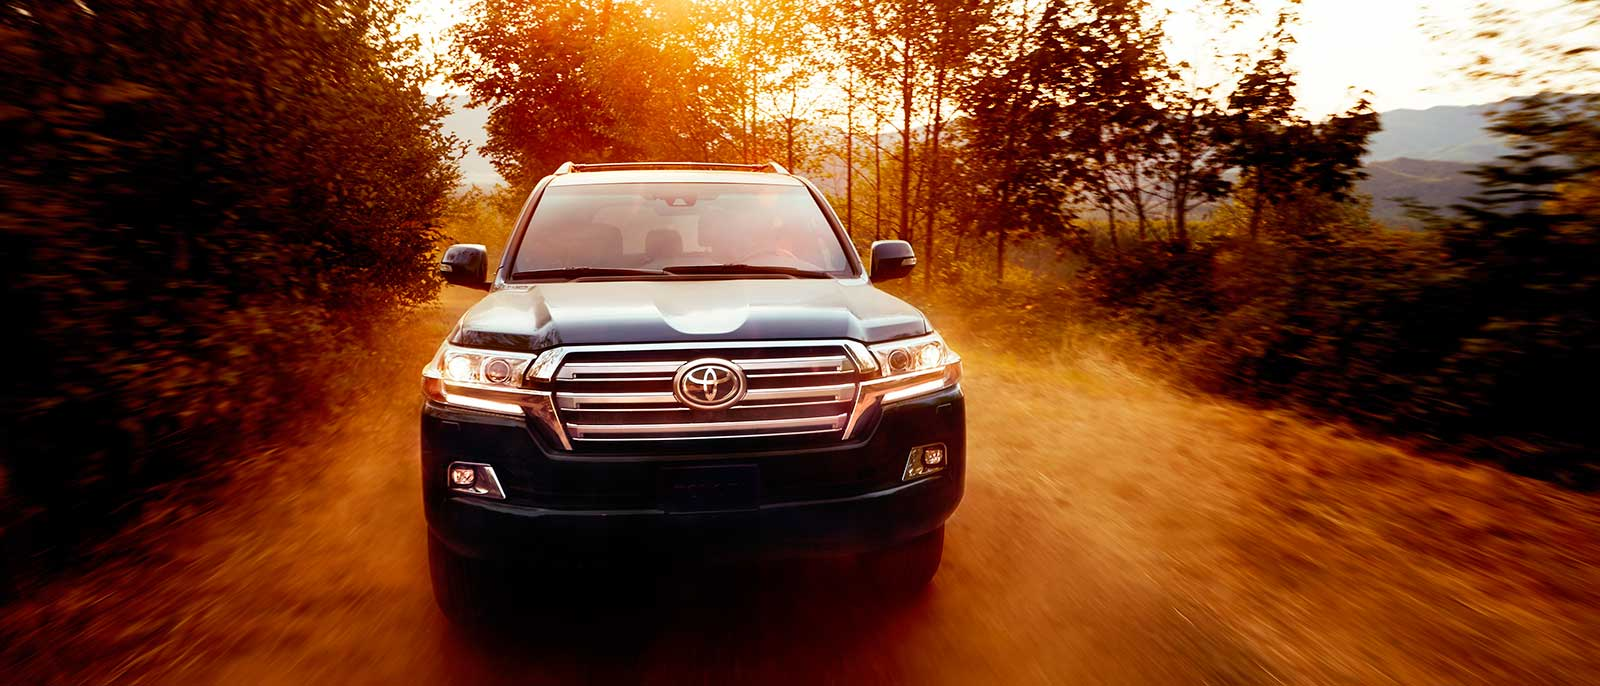 2017 Toyota Land Cruiser in the forest